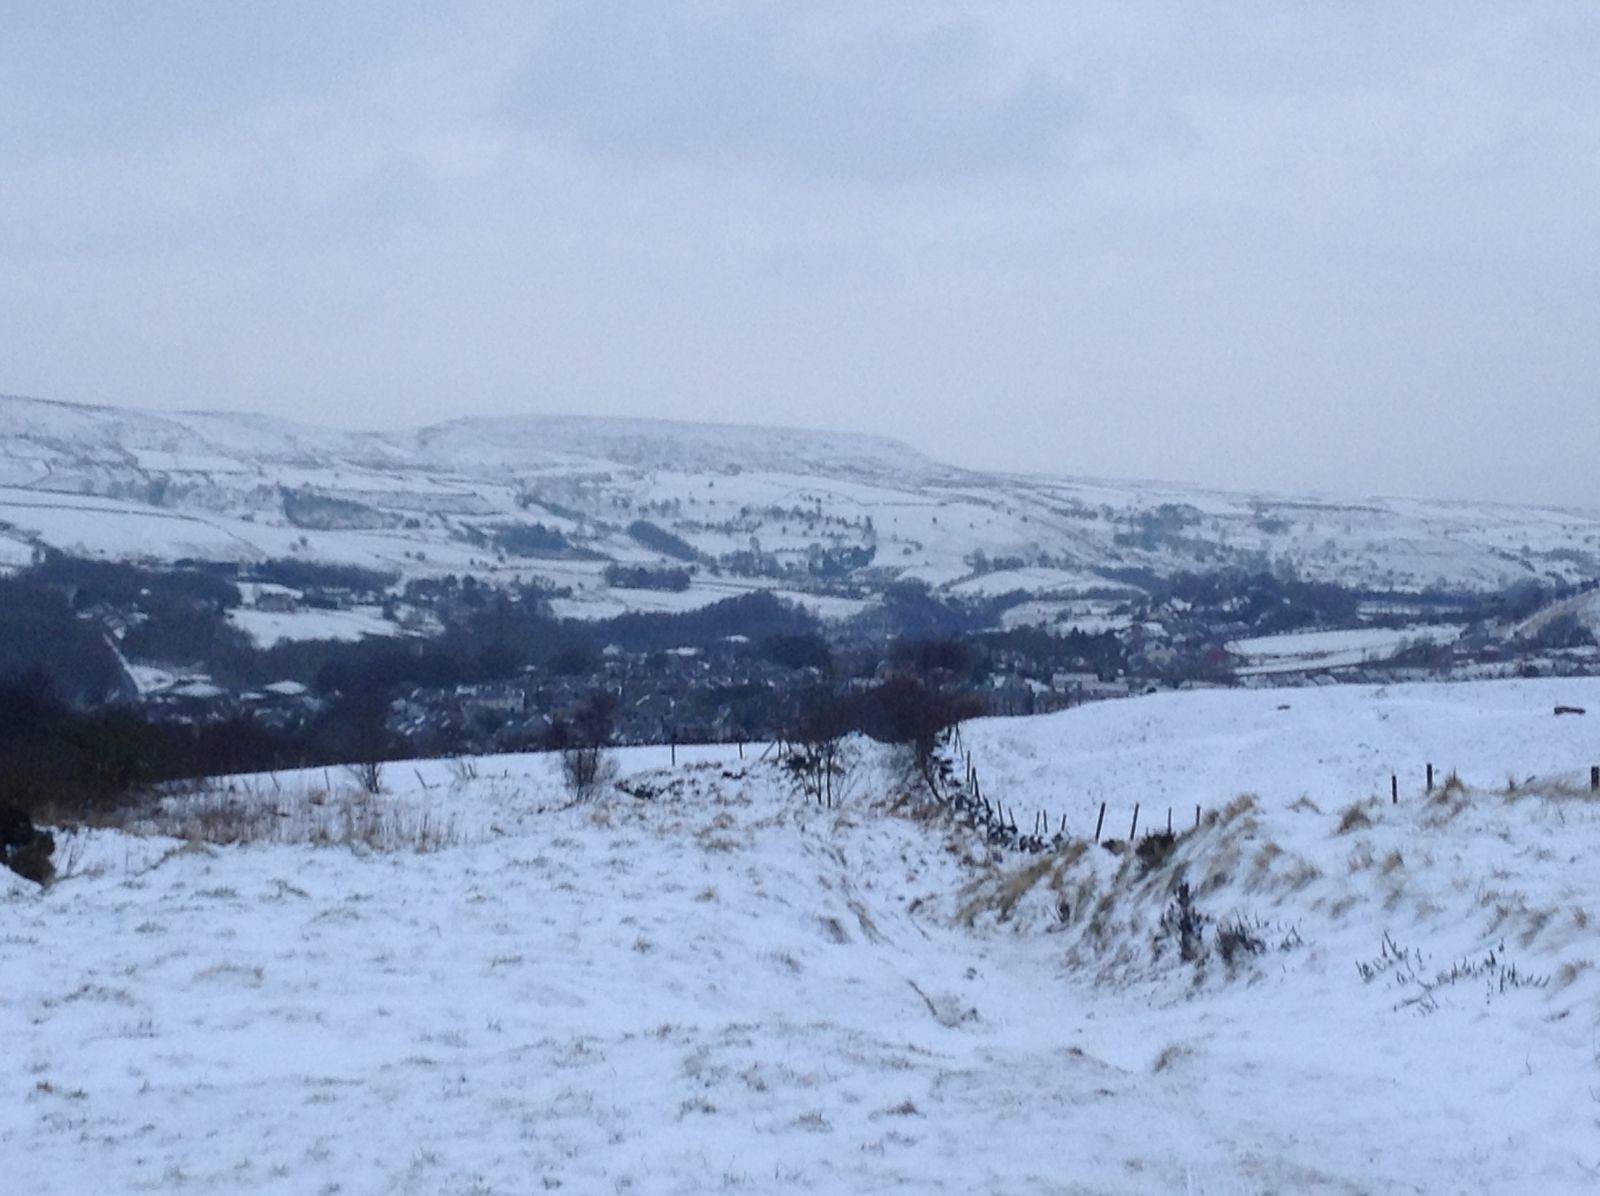 Down Rossendale Valley